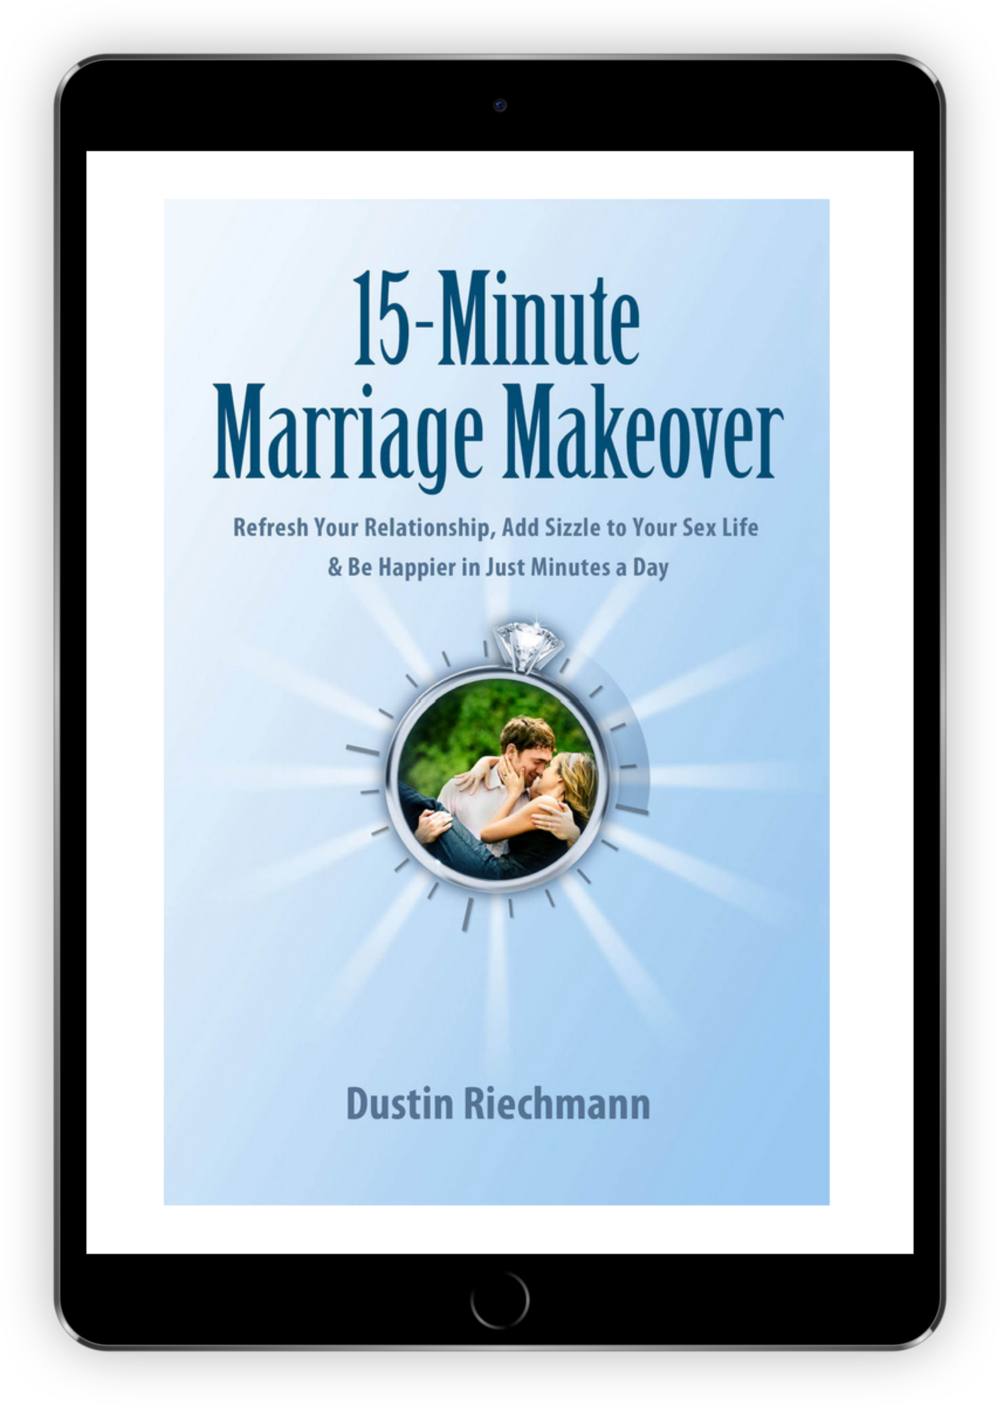 15 minute marriage makeover ebook